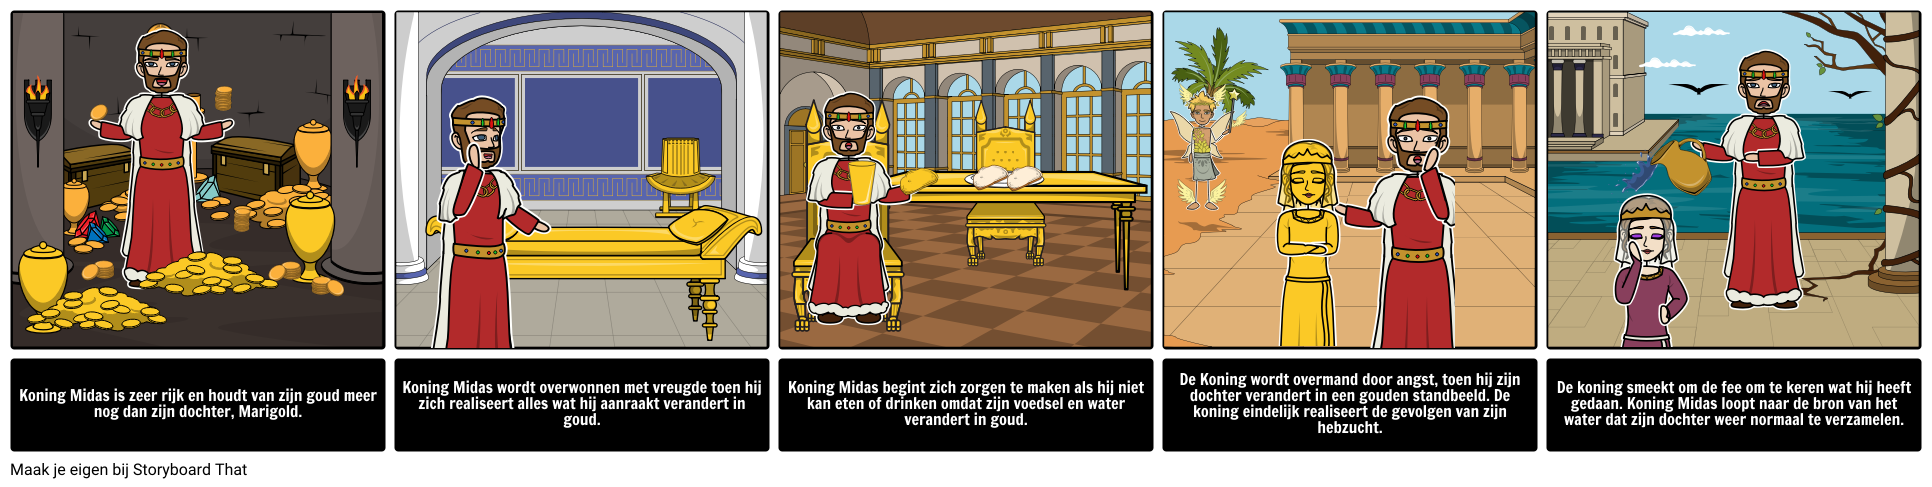 Koning Midas 'Golden Touch Character Analysis